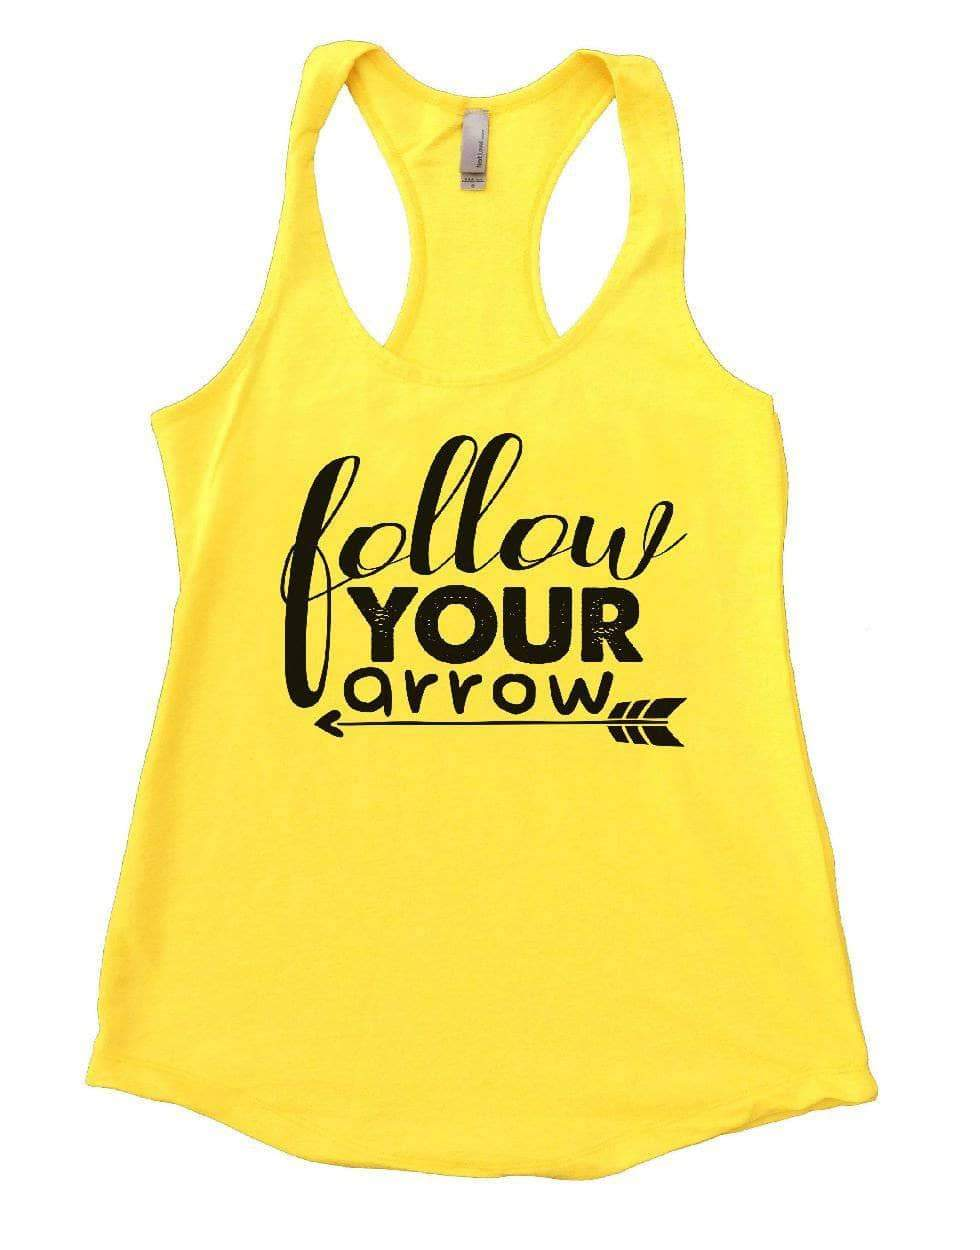 Follow YOUR Arrow Womens Workout Tank Top Small Womens Tank Tops Yellow